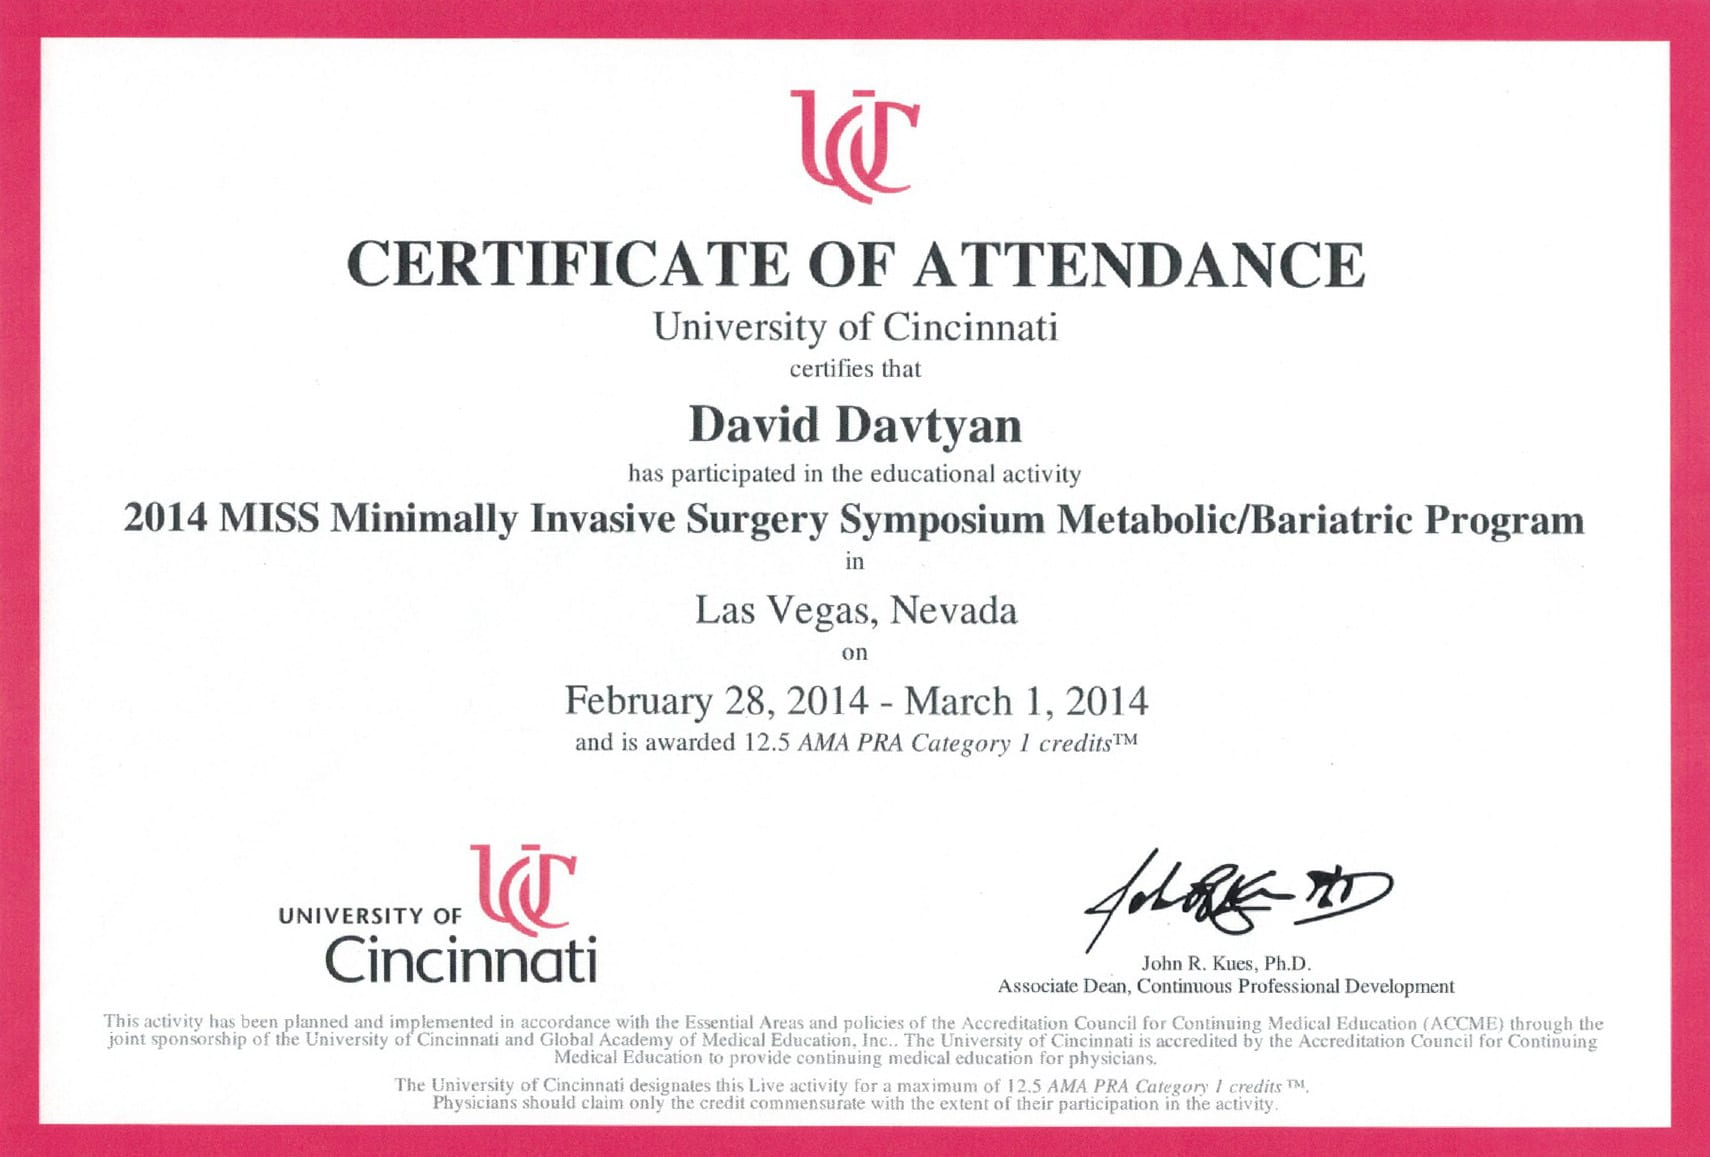 Dr. David Davtyan's 2014 University of Cincinnati MISS Minimally Invasive Surgery Symposium Certification Of Attendance